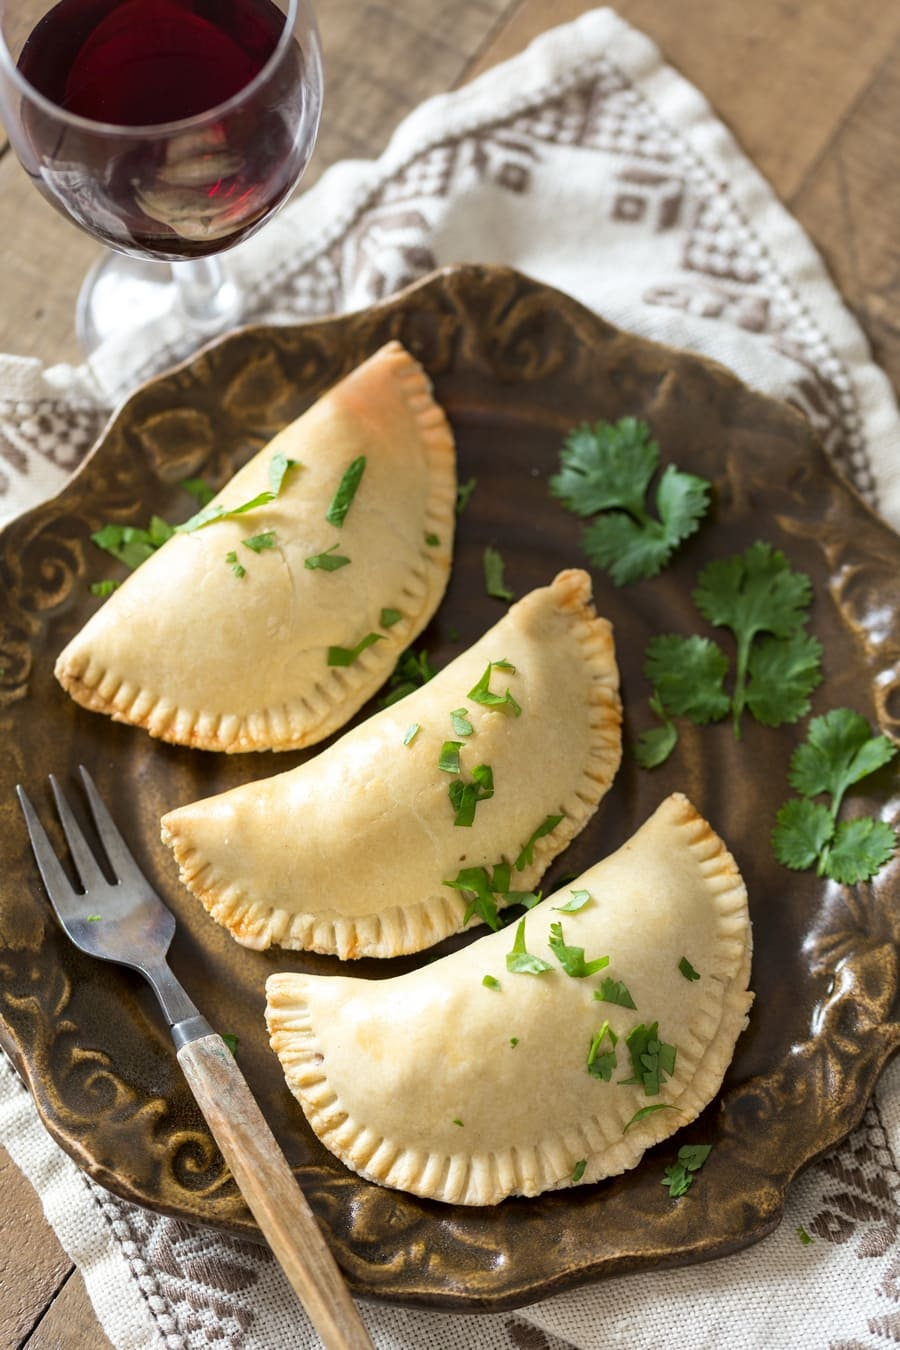 Veggie empanadas on a brown plate, decorated with cilantro.